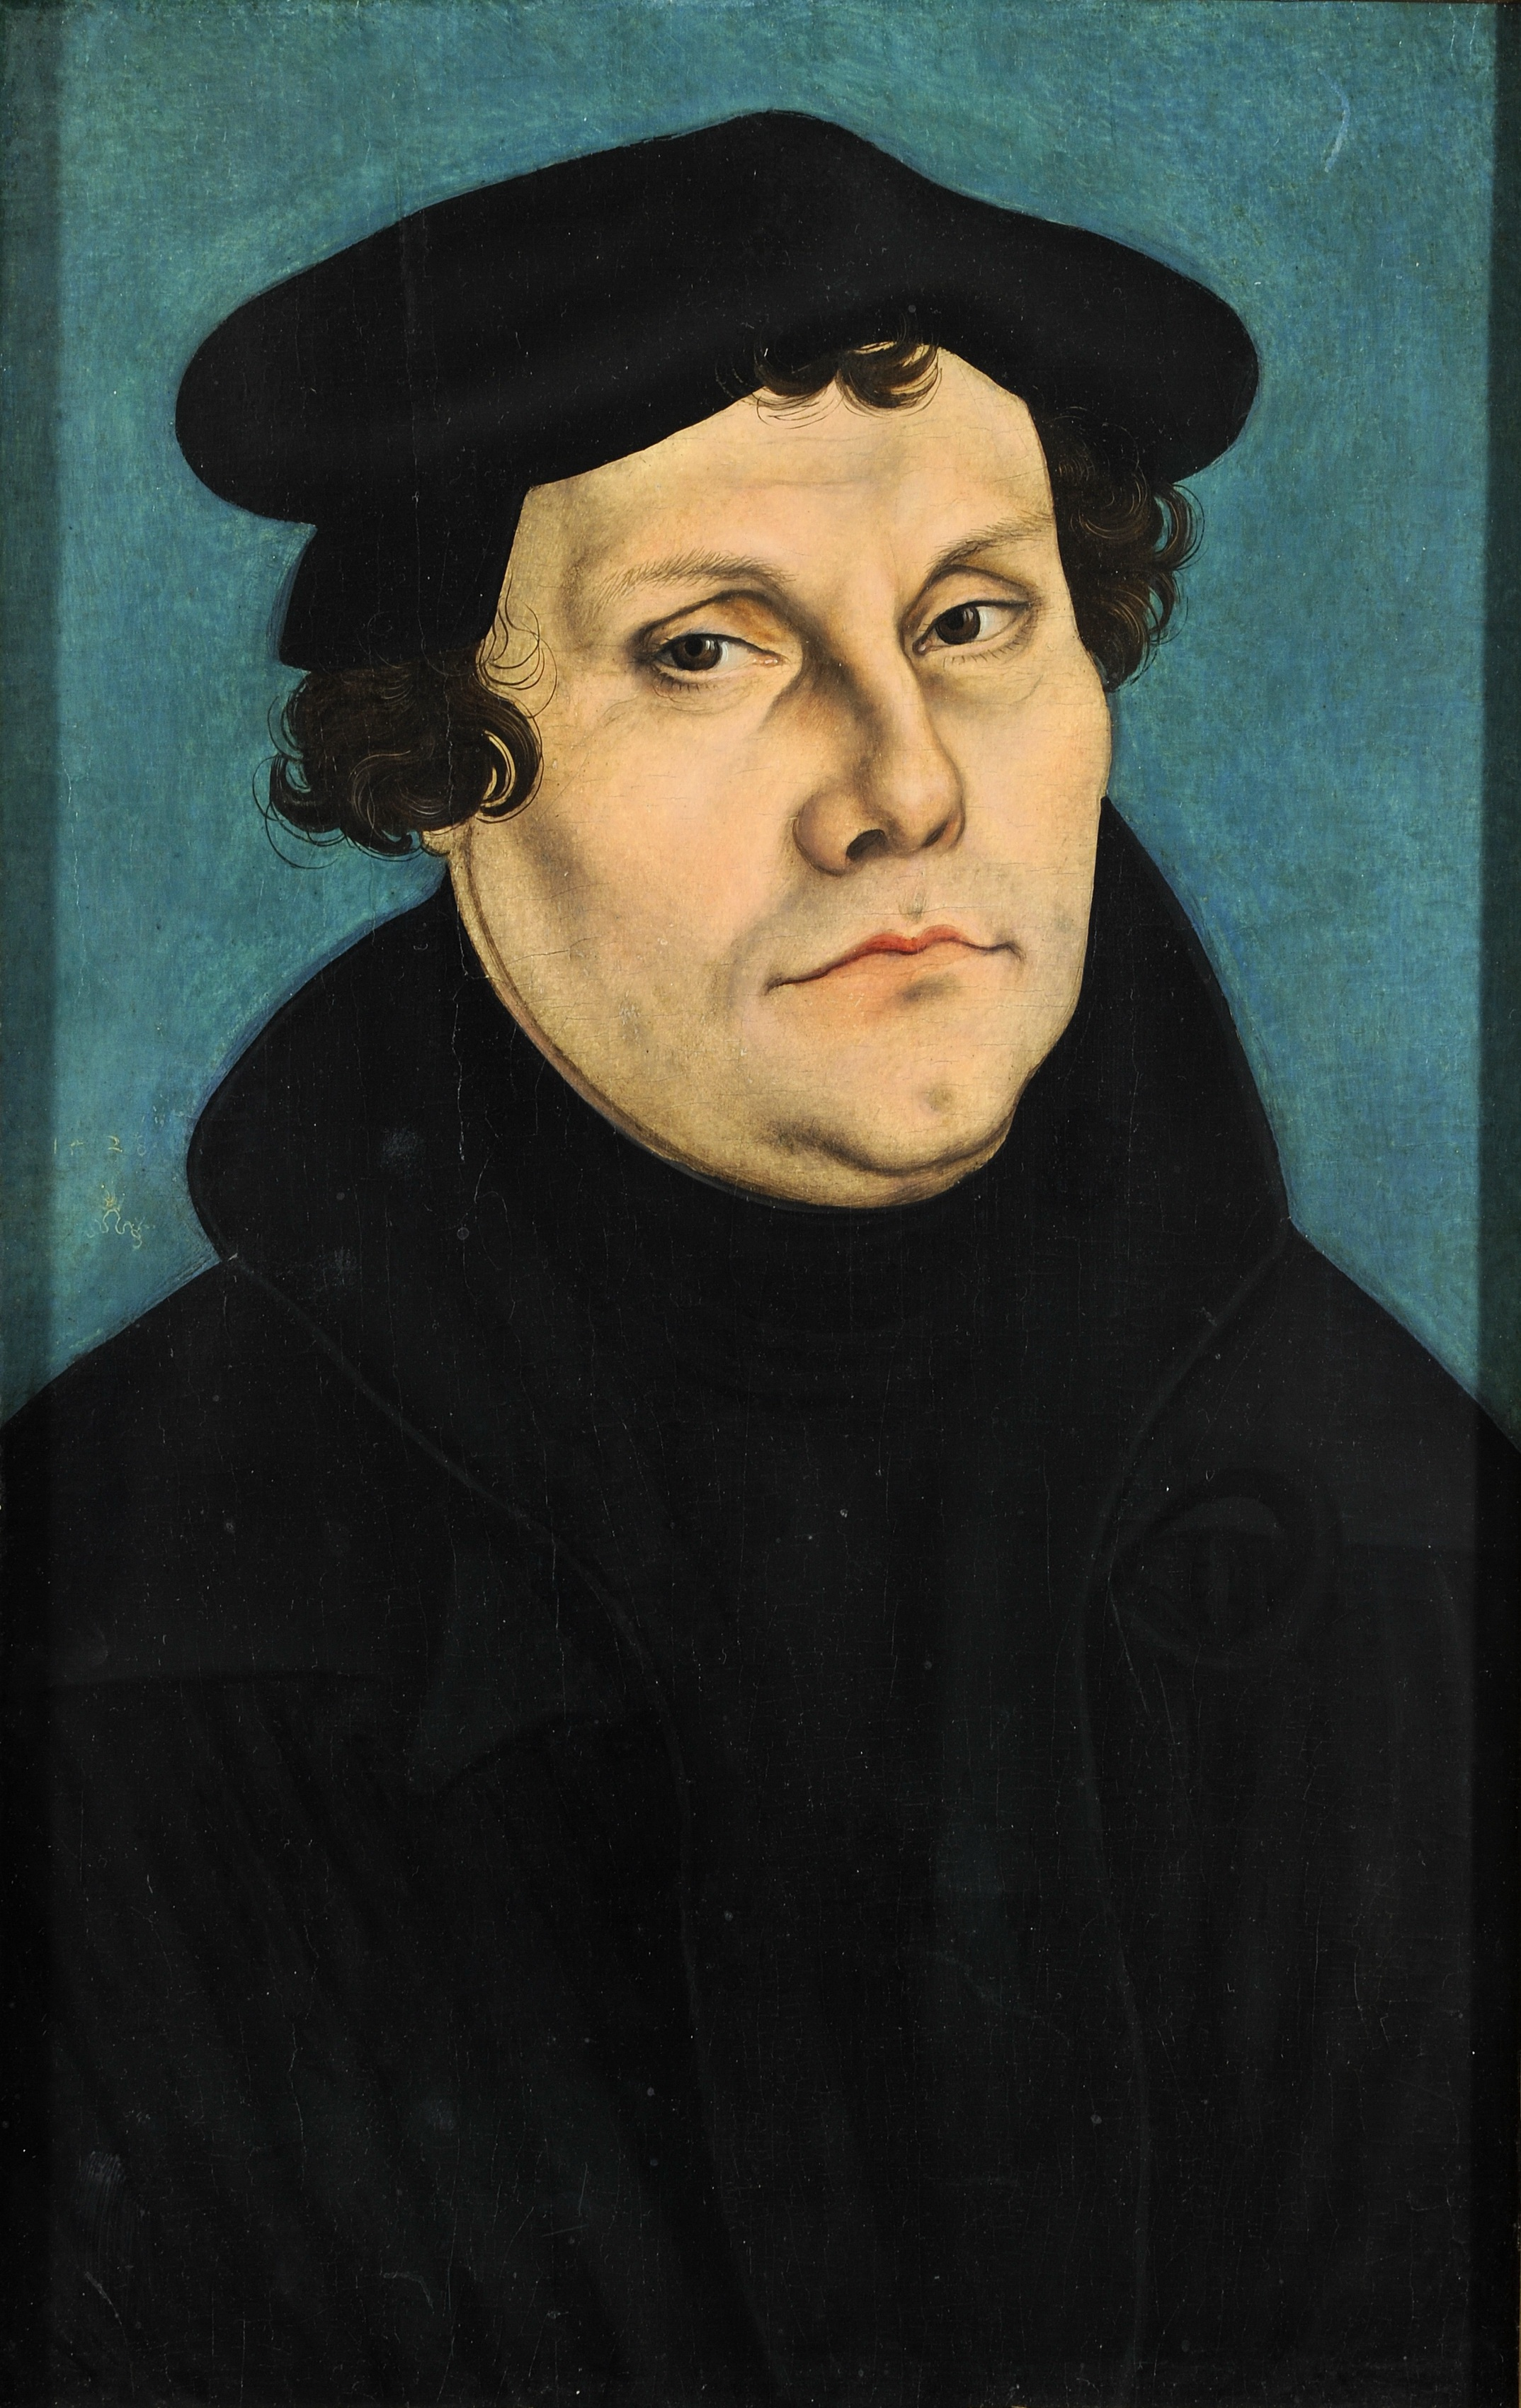 http://upload.wikimedia.org/wikipedia/commons/9/90/Lucas_Cranach_d.%C3%84._-_Martin_Luther,_1528_(Veste_Coburg).jpg